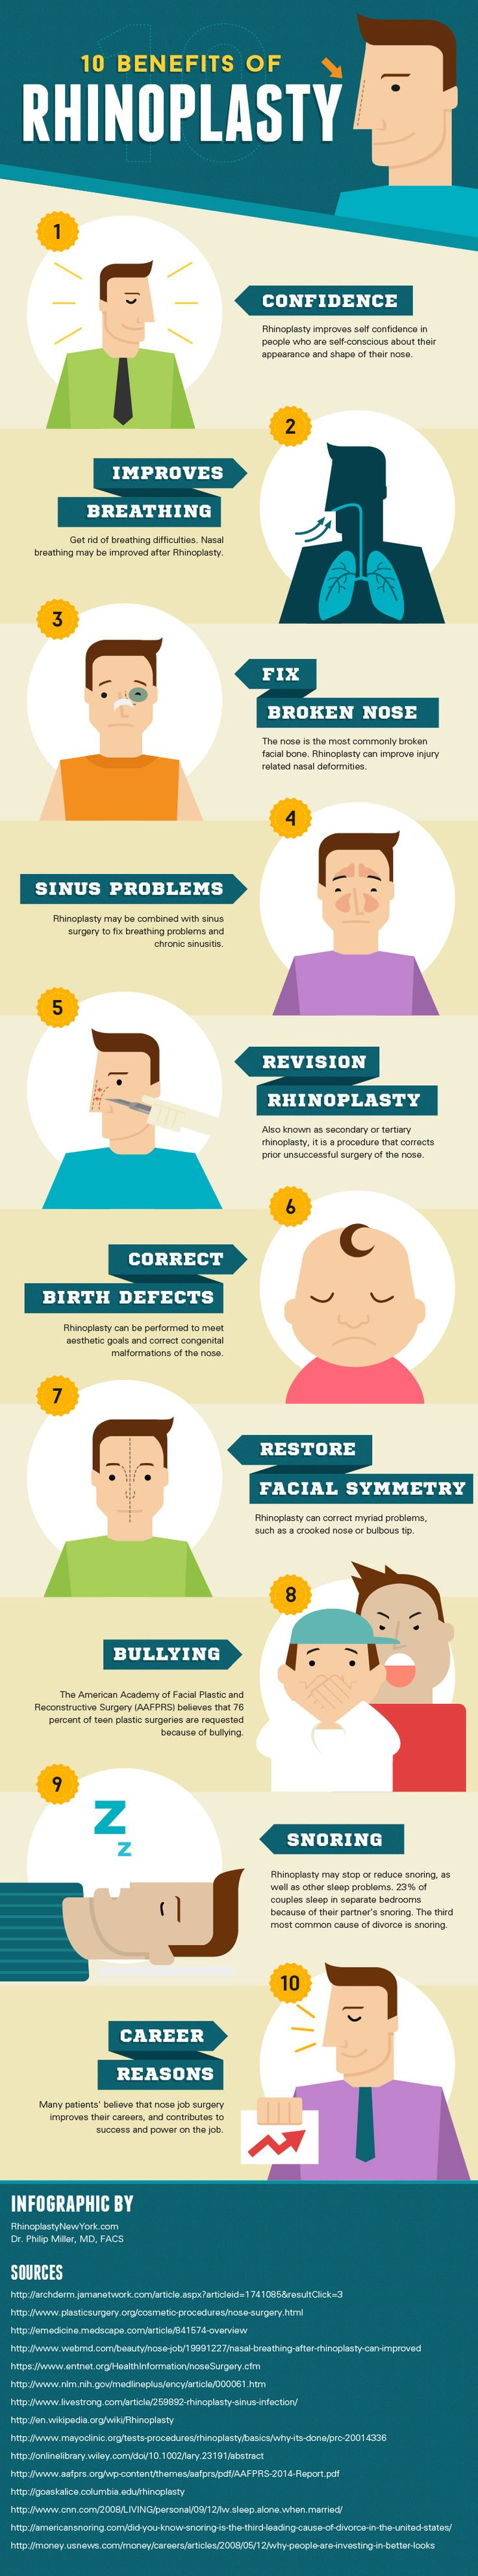 best ideas about rhinoplasty surgery nose job dr philip miller highlights the 10 benefits of rhinoplasty in his most recent infographic